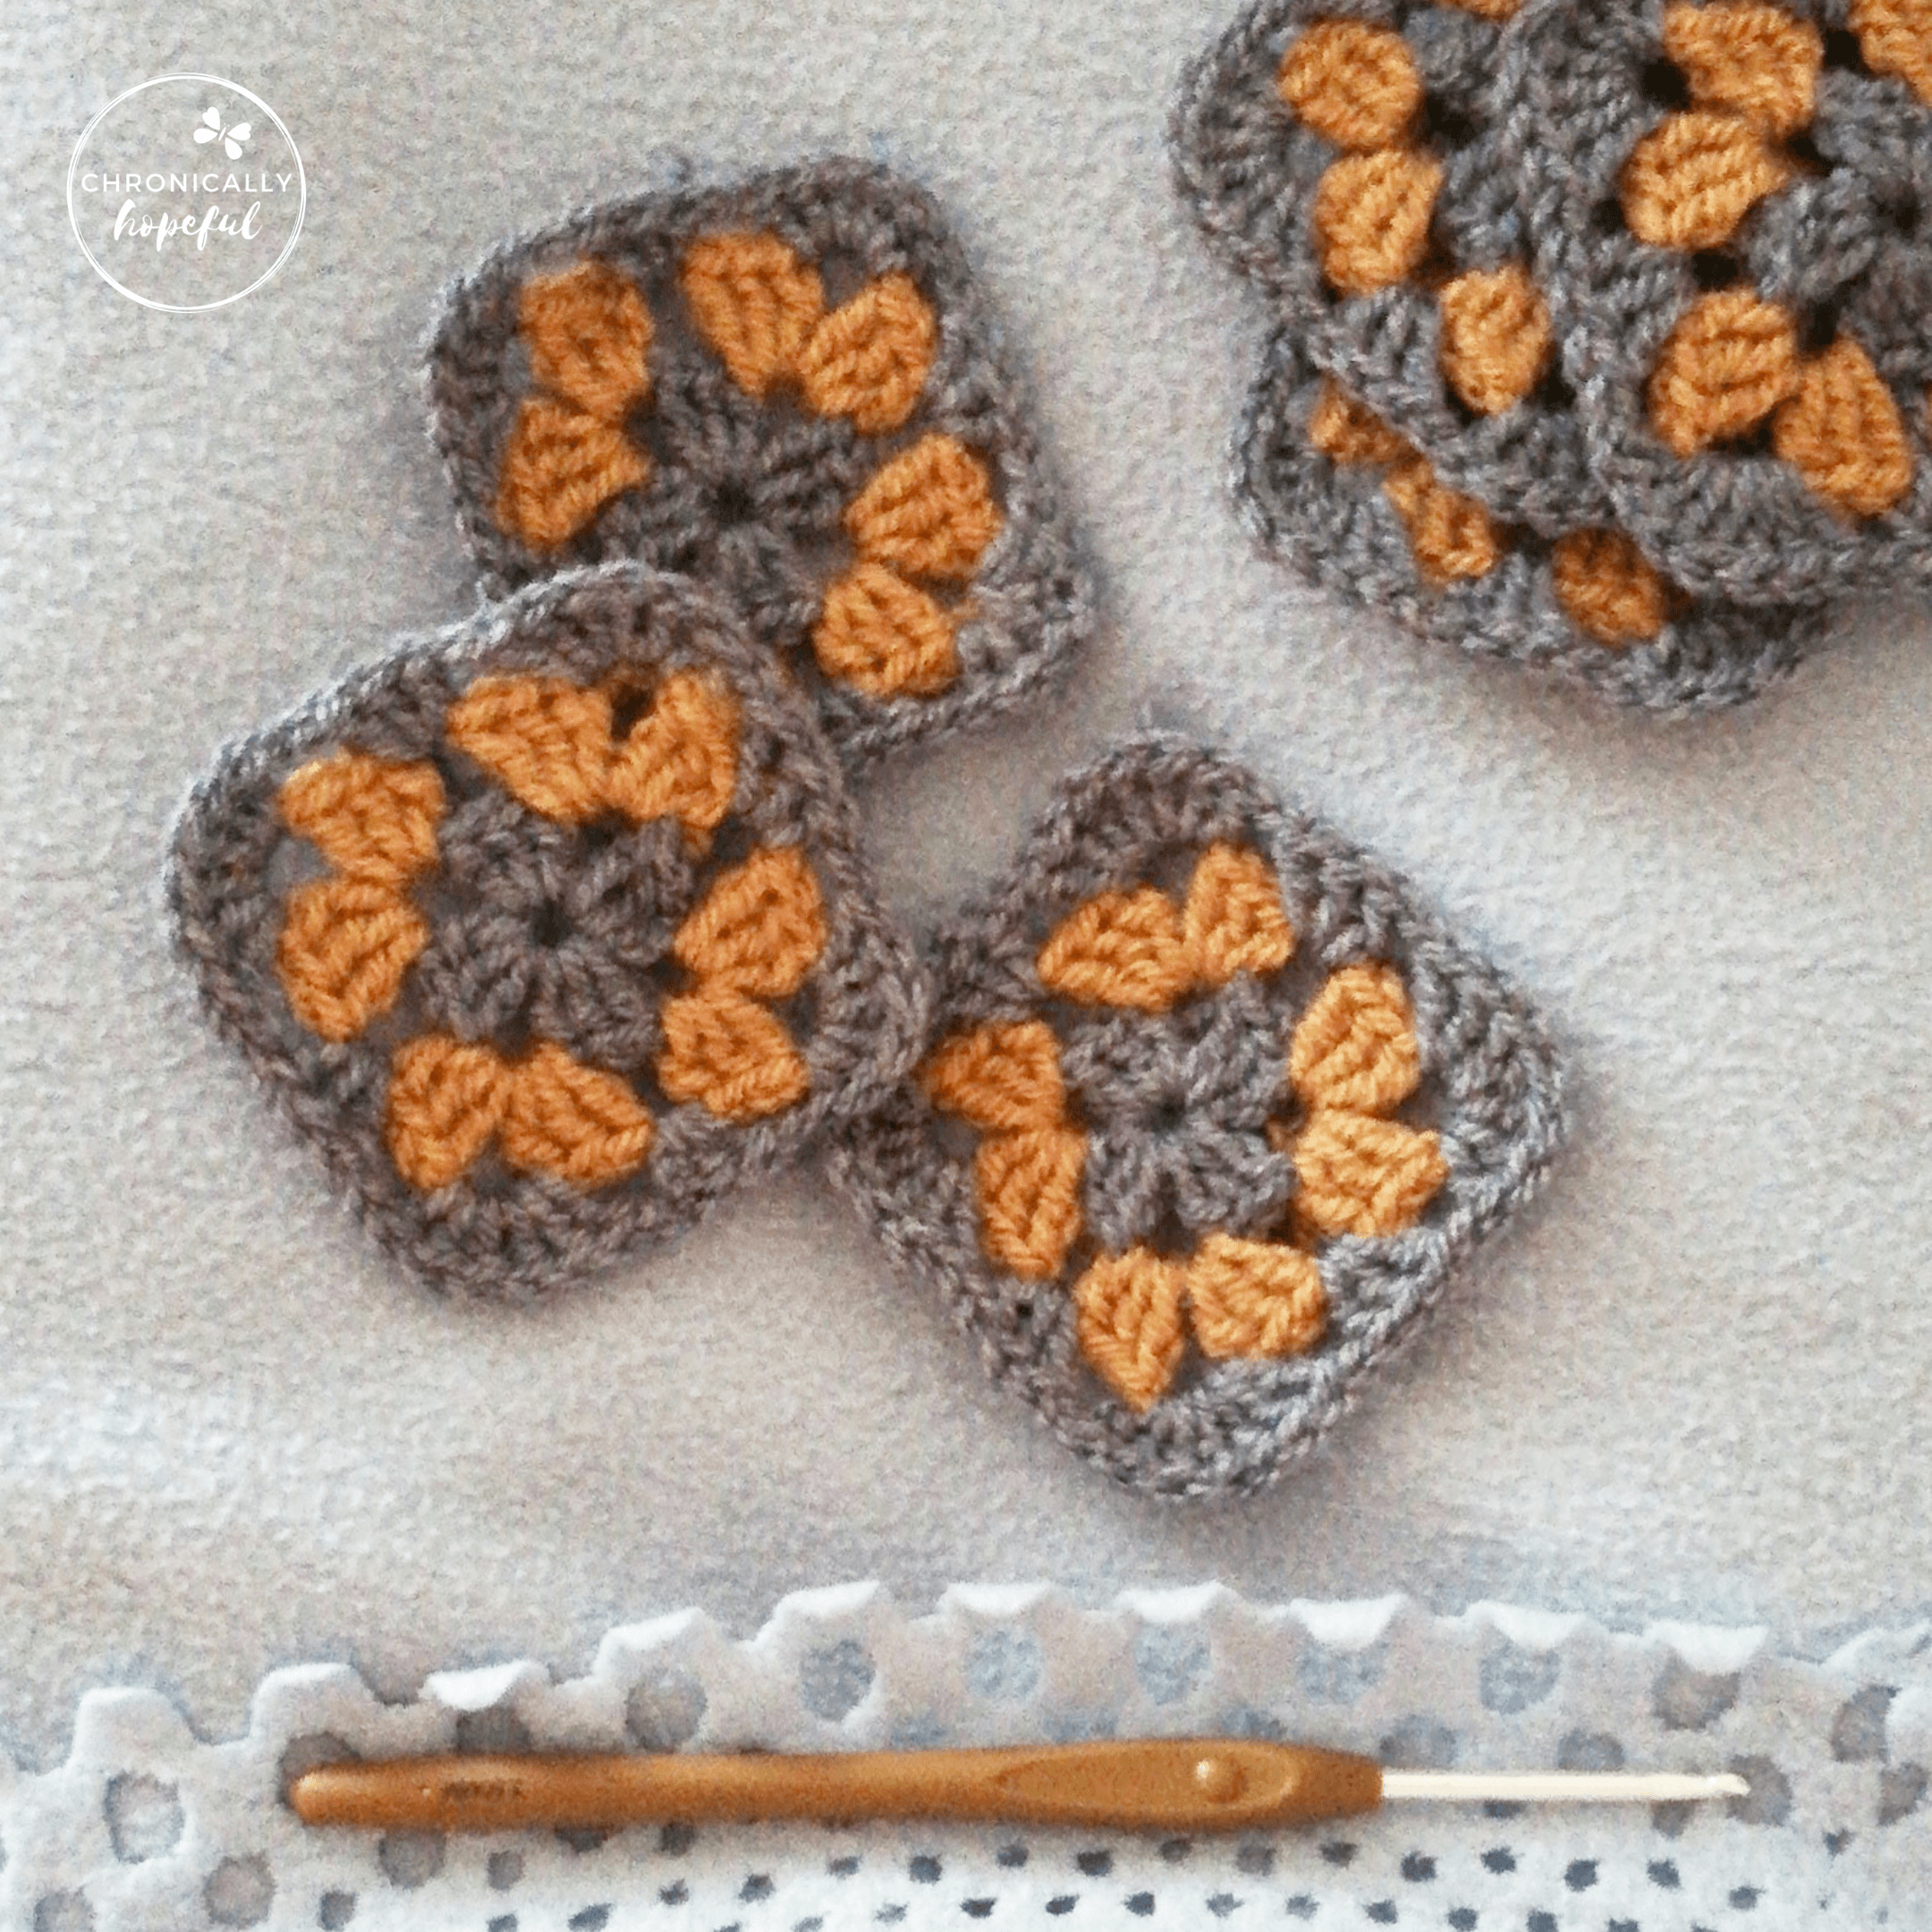 Crocheted granny squares in blue and brown, lying on a blanket. Brown crochet hook to the bottom of the picture.